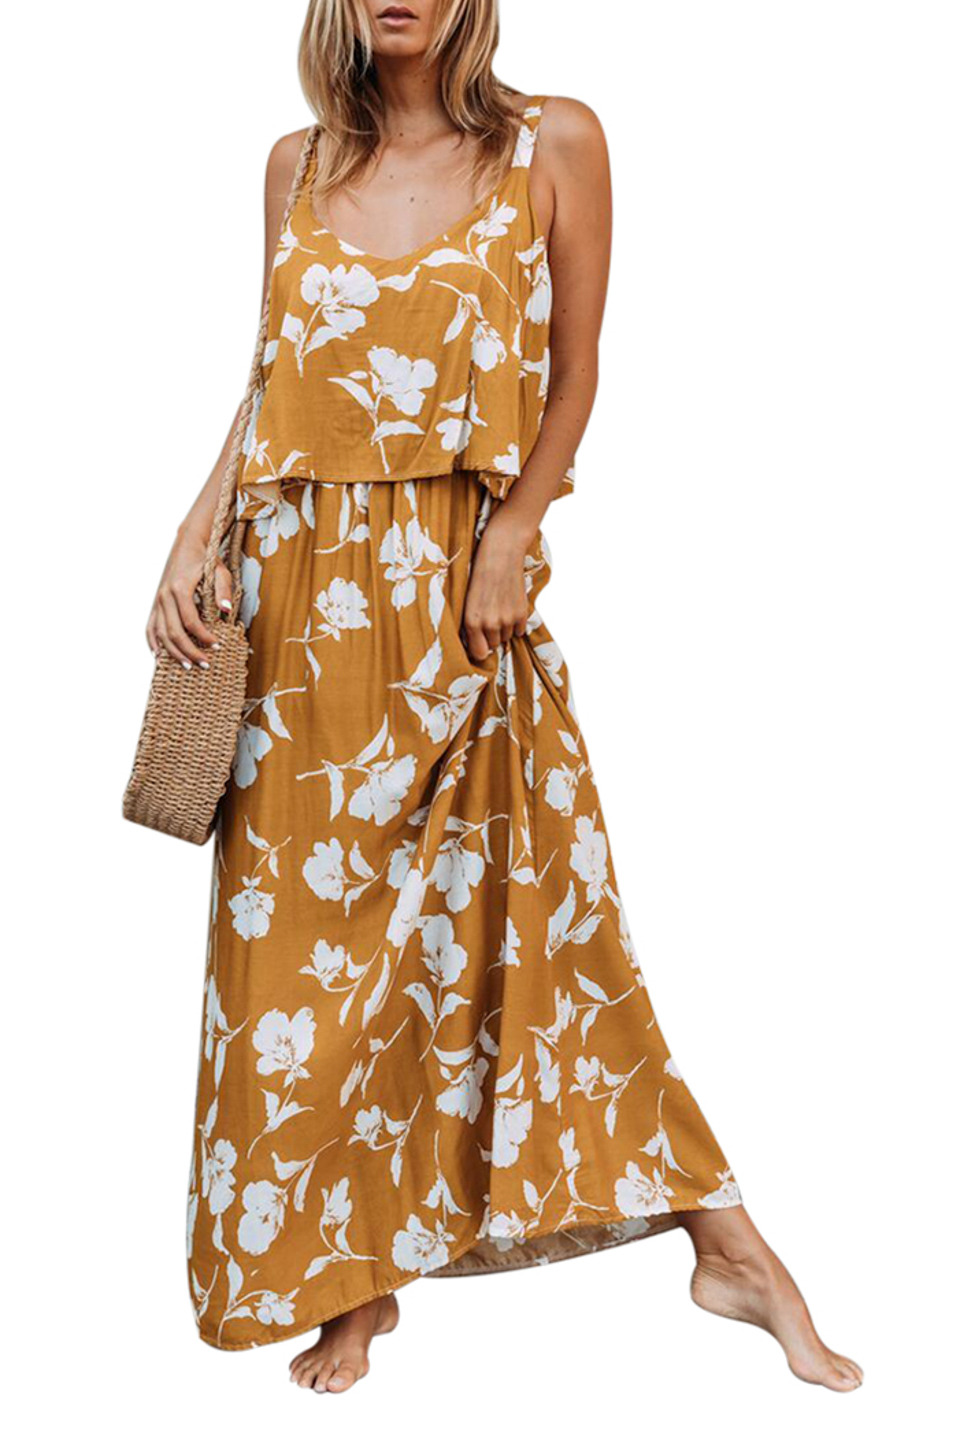 Chic Summer Boho Floral Maxi Dress in Yellow Floral